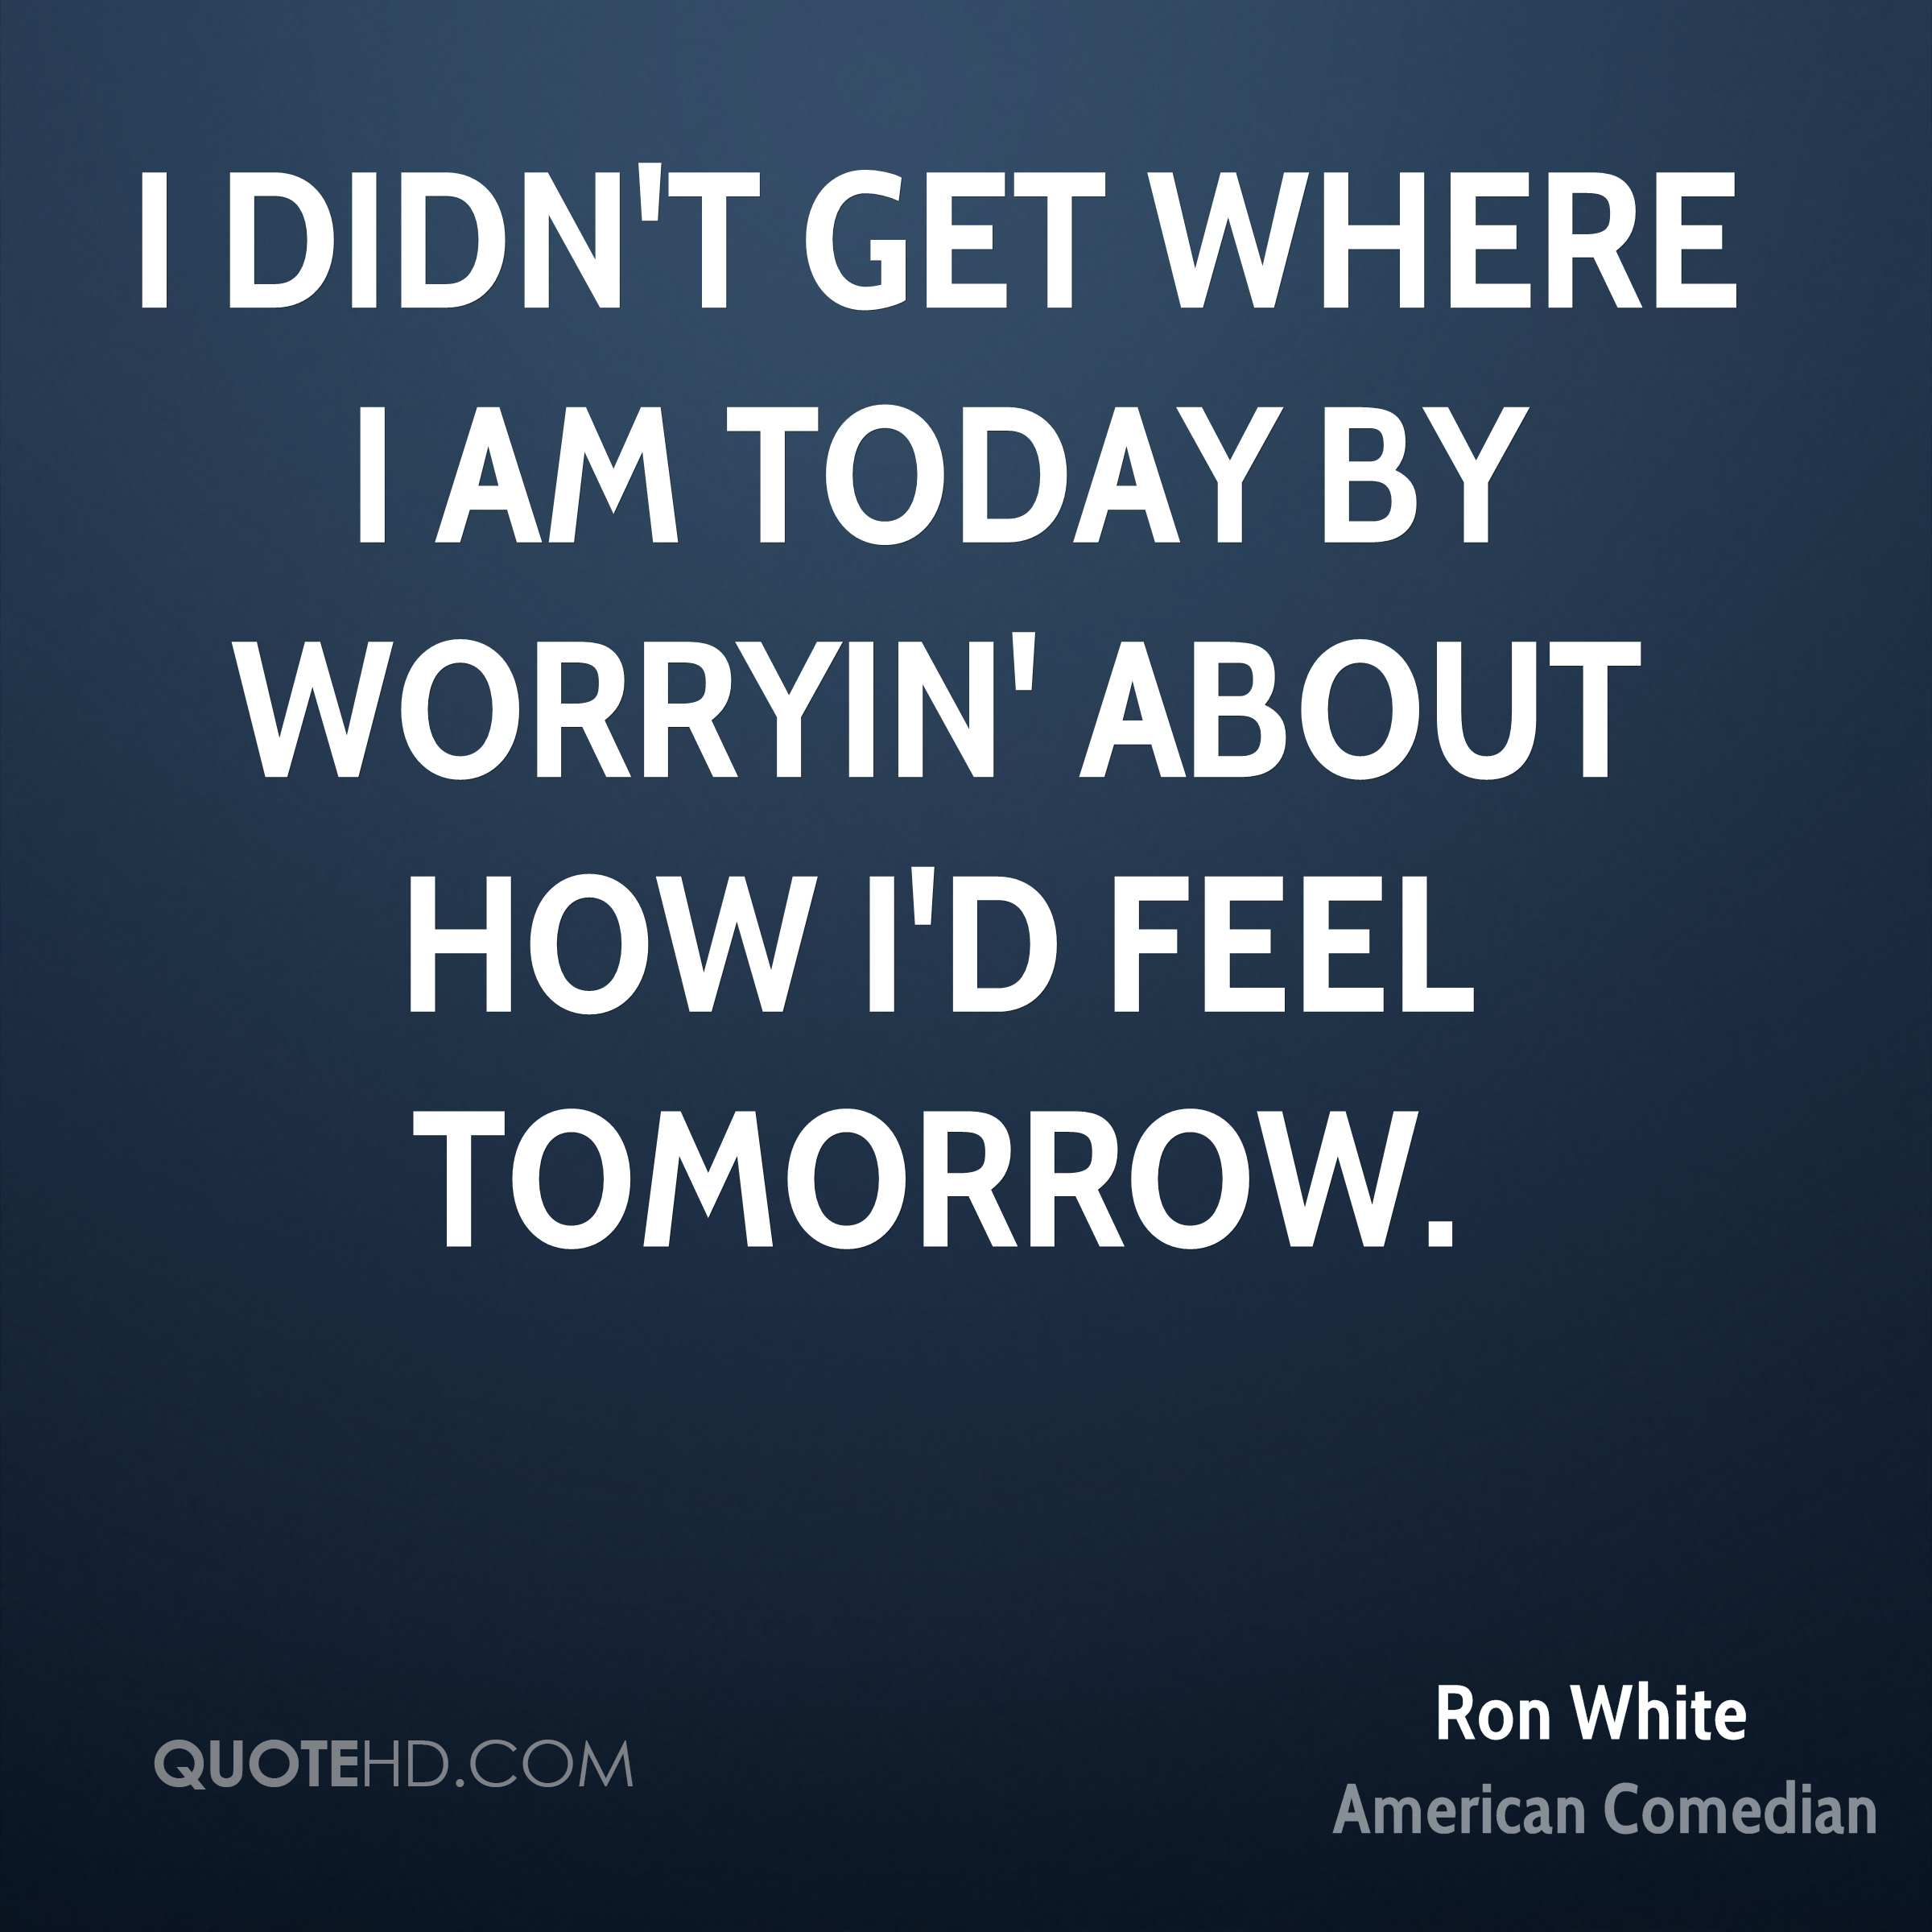 I didn't get where I am today by worryin' about how I'd feel tomorrow.